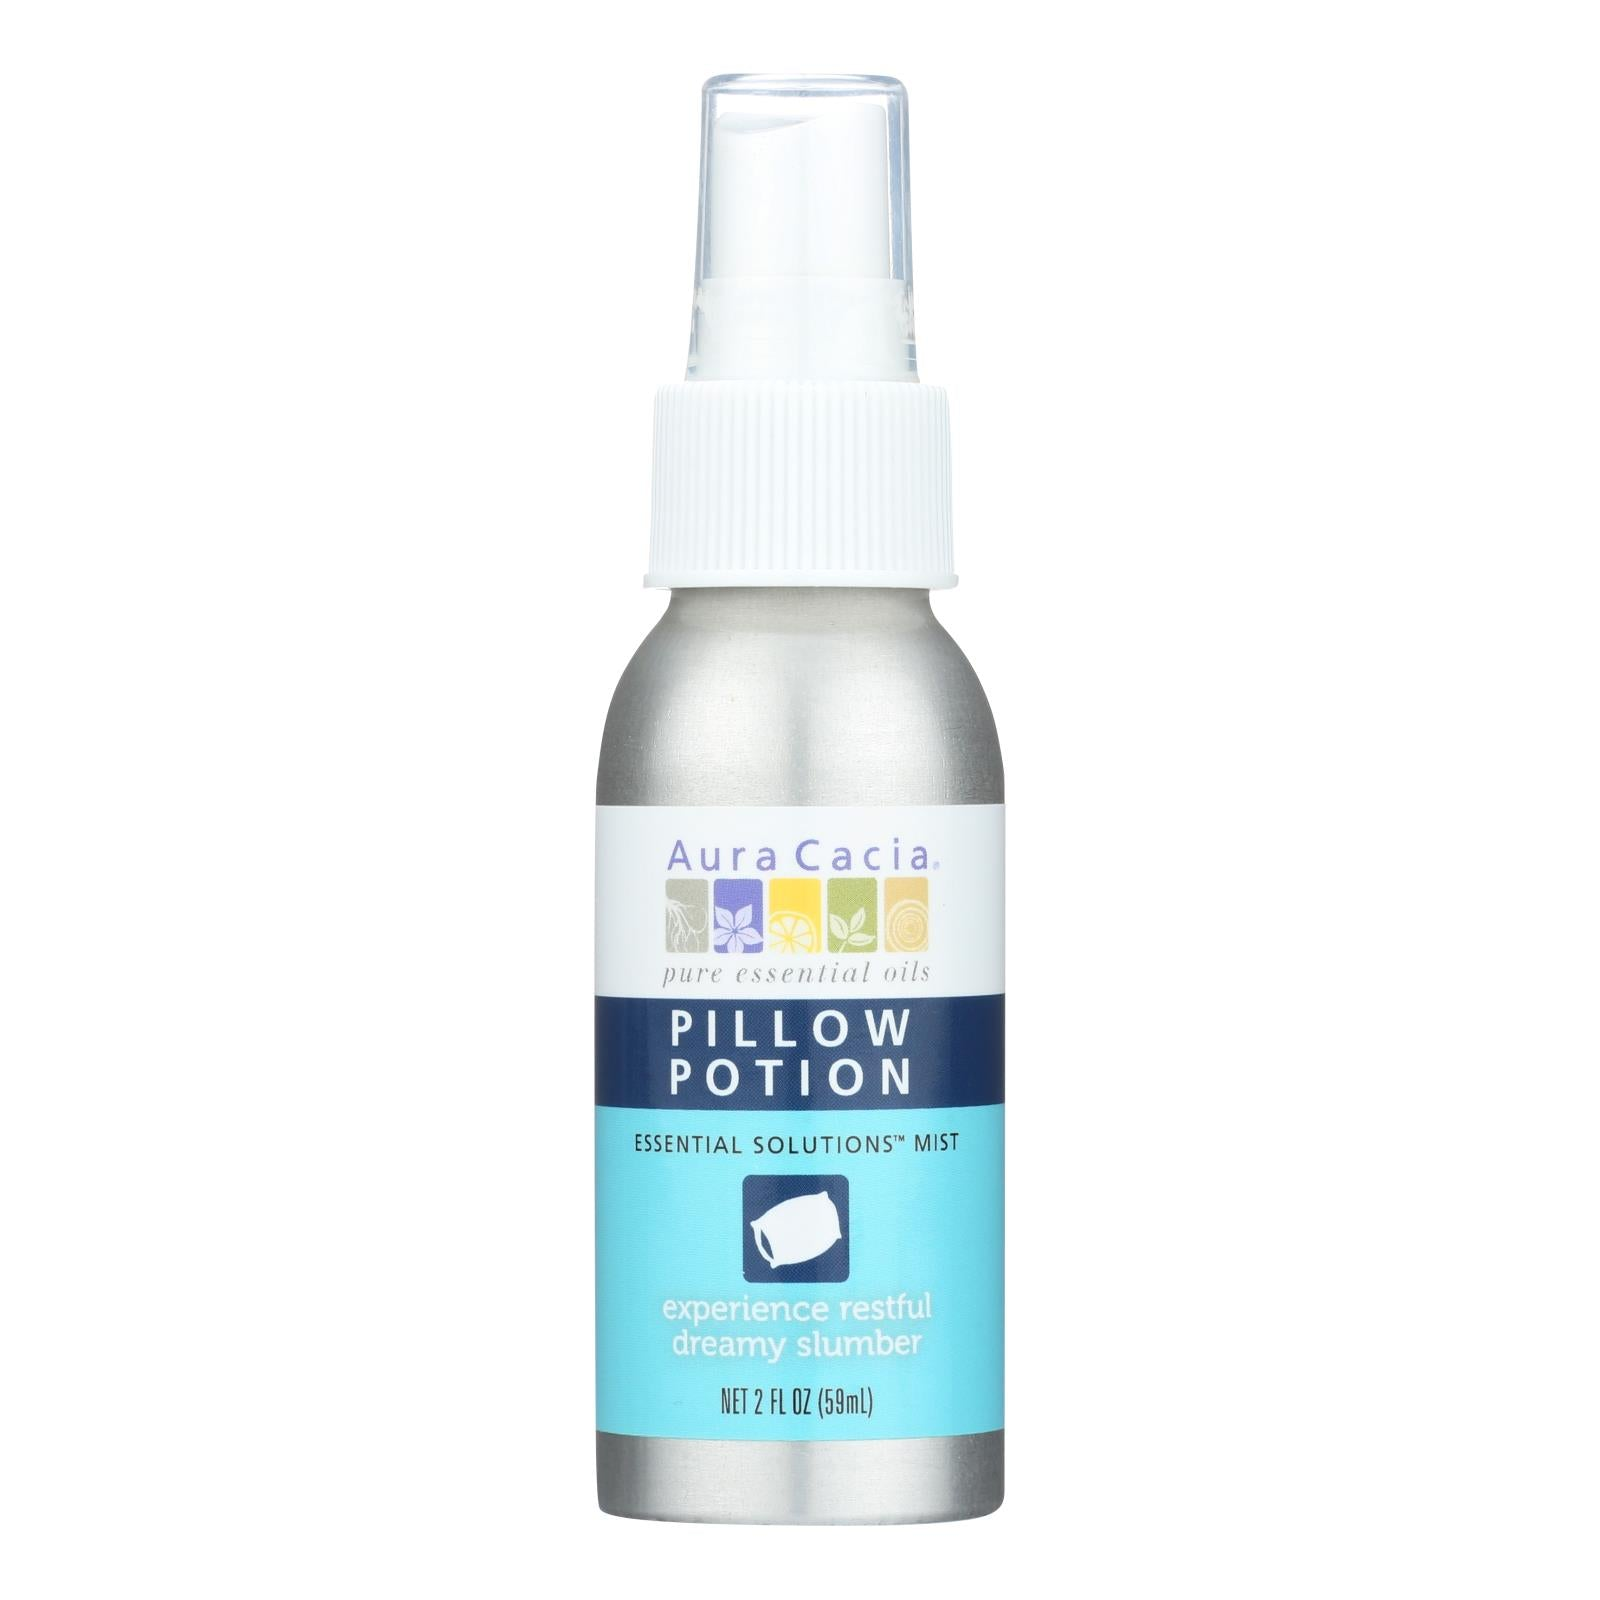 Aura Cacia - Essential Solutions Mist Pillow Potion - 2 Fl Oz